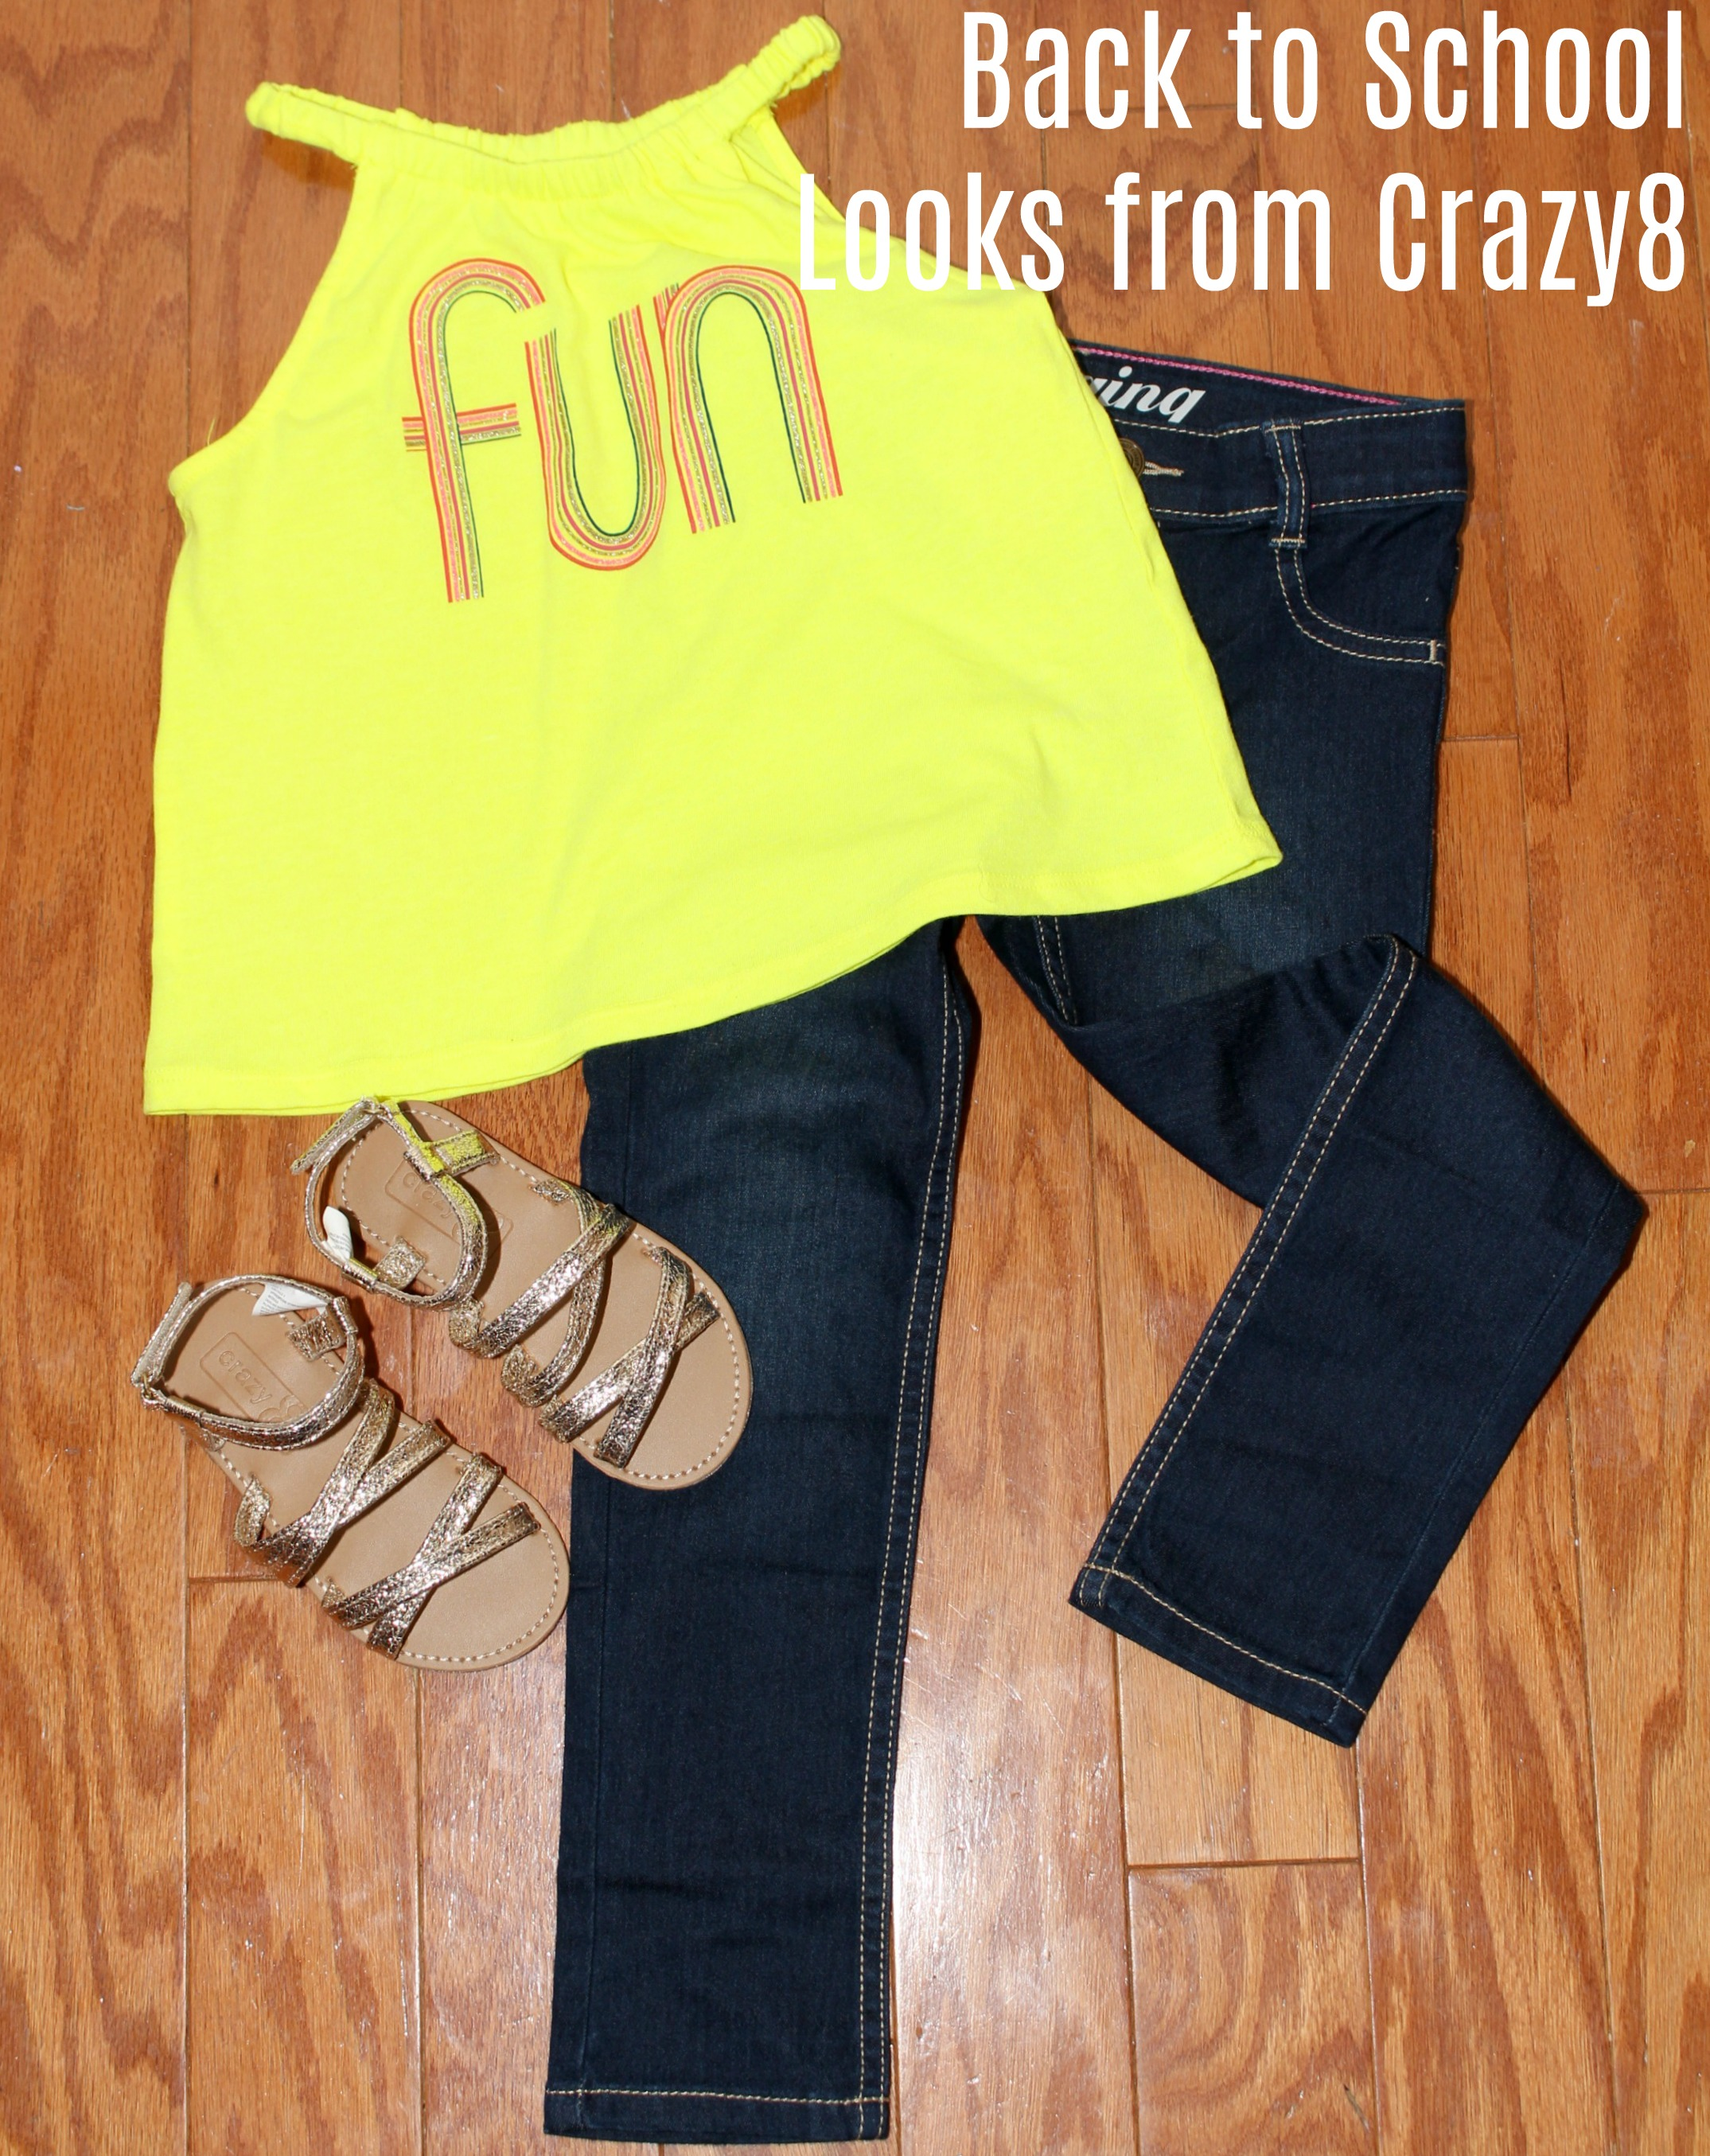 Back to School Looks from Crazy8